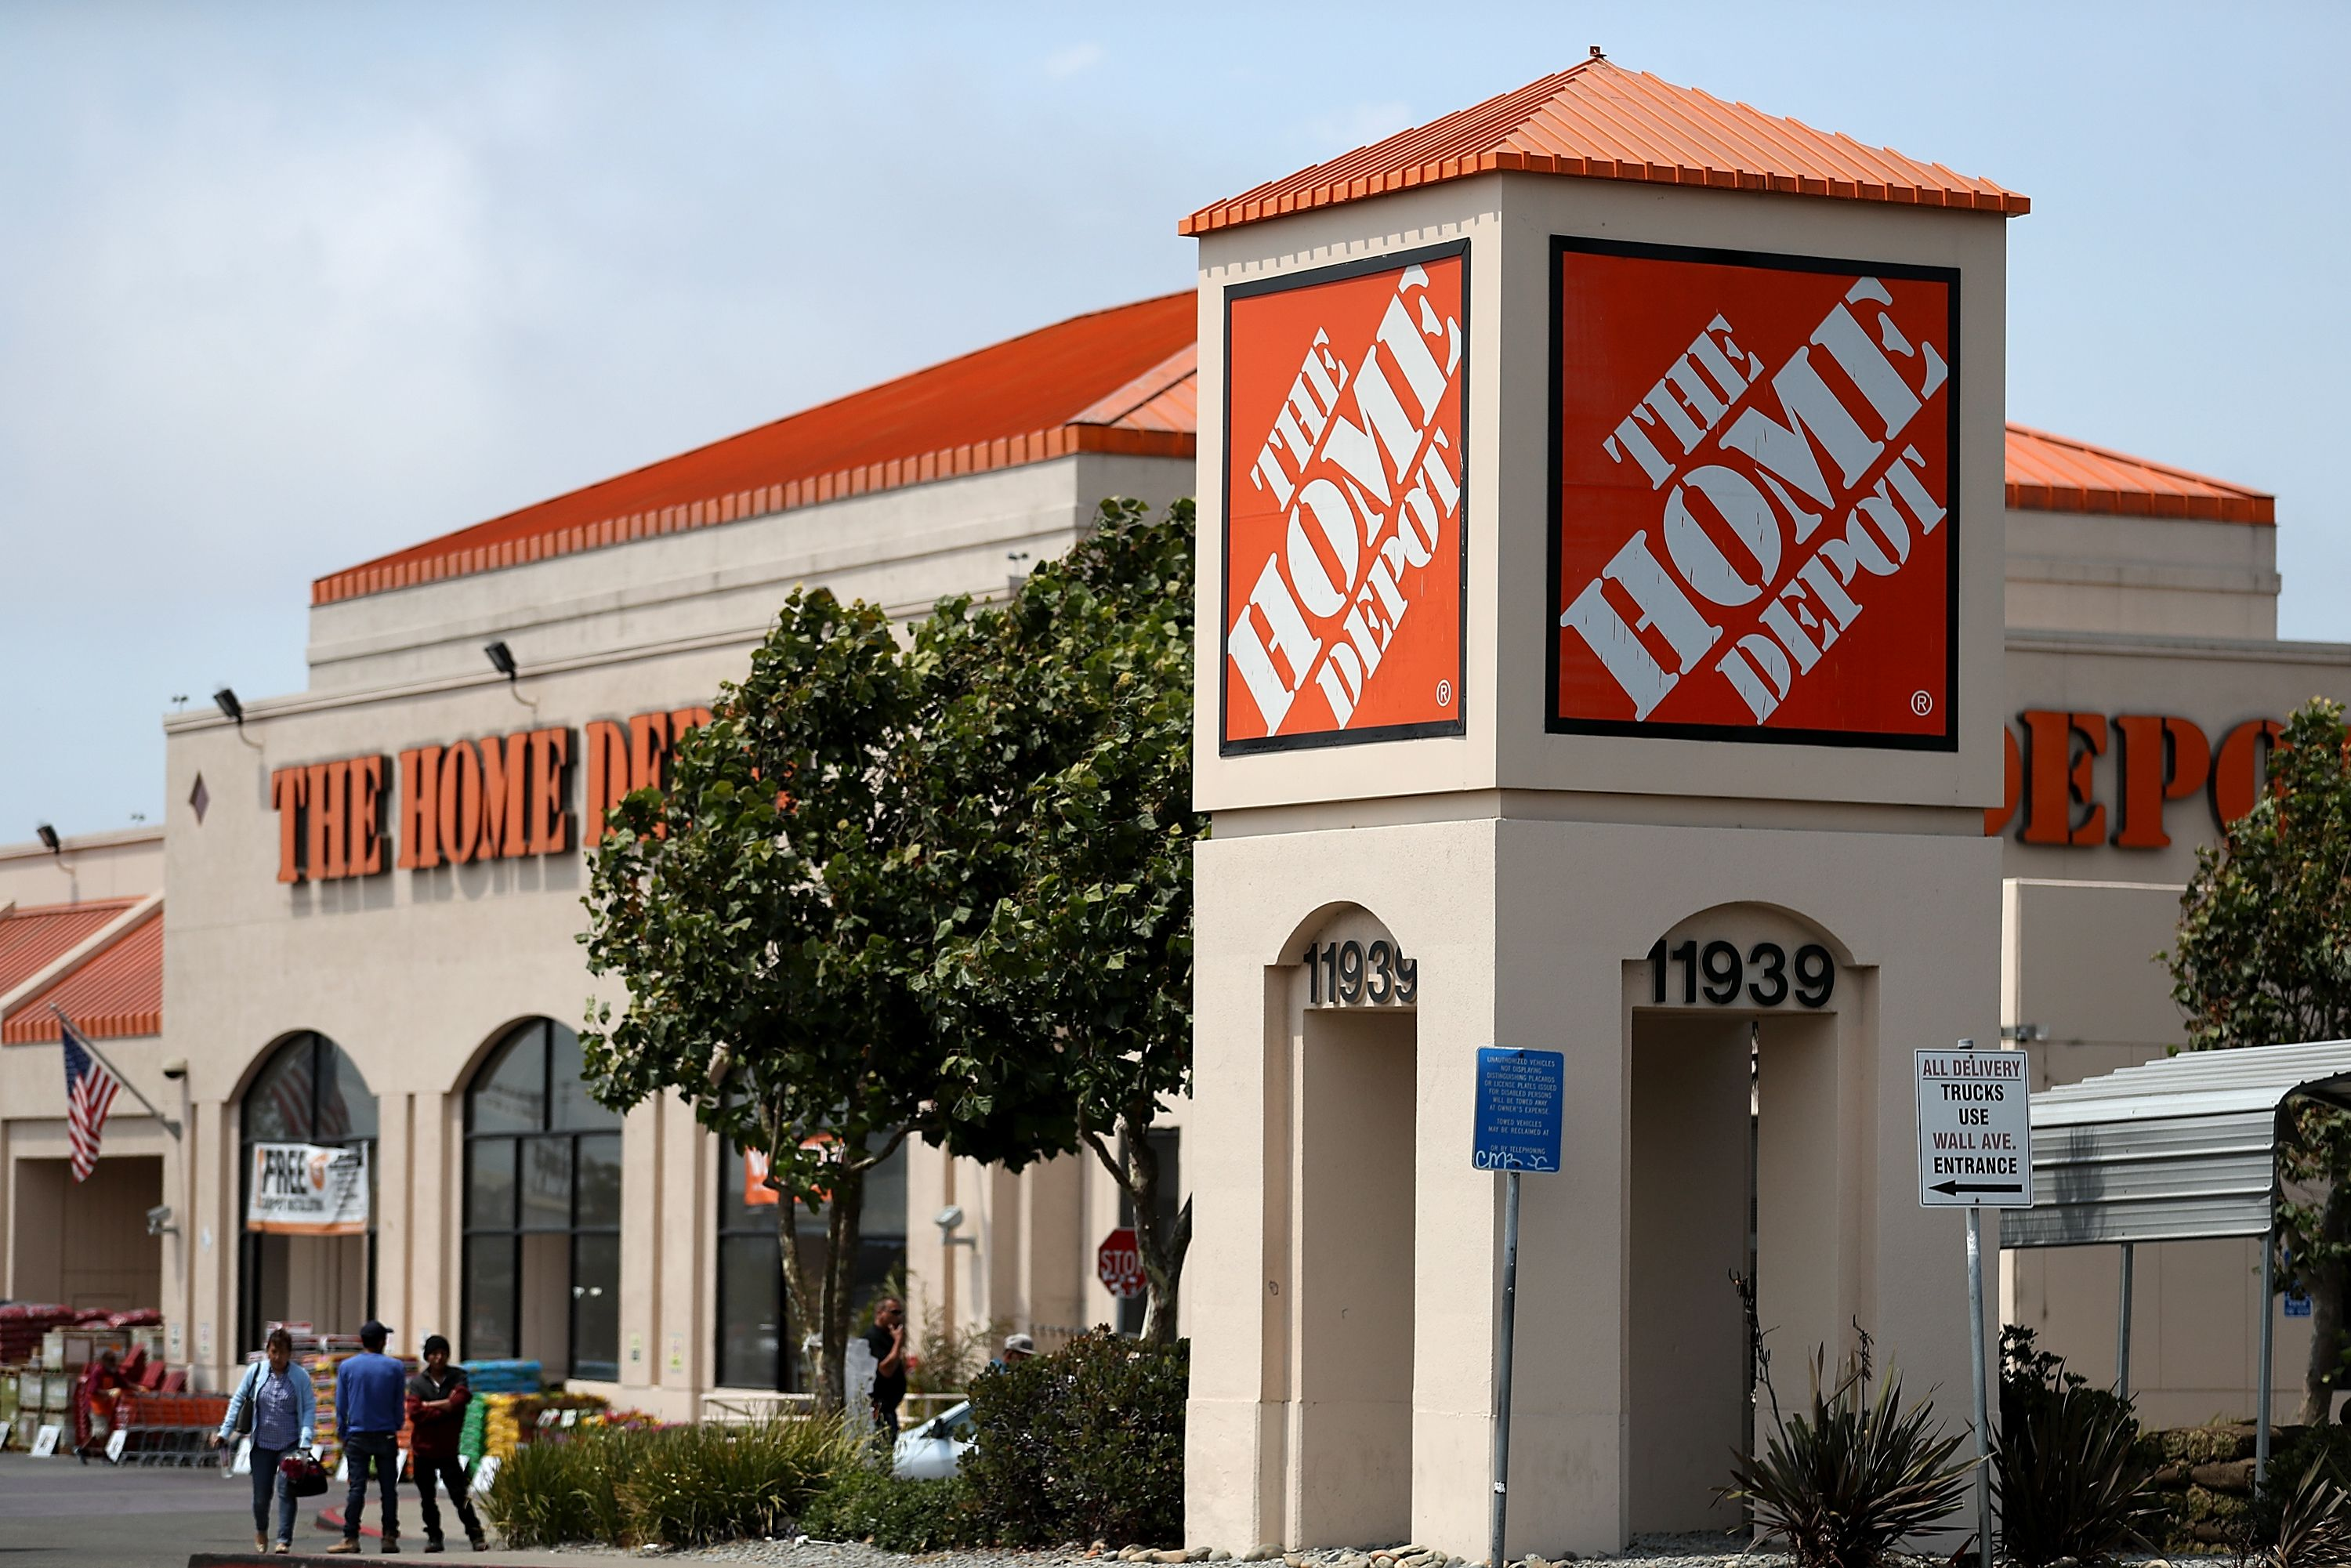 Here's What to Expect From Home Depot's Black Friday Sale This Year